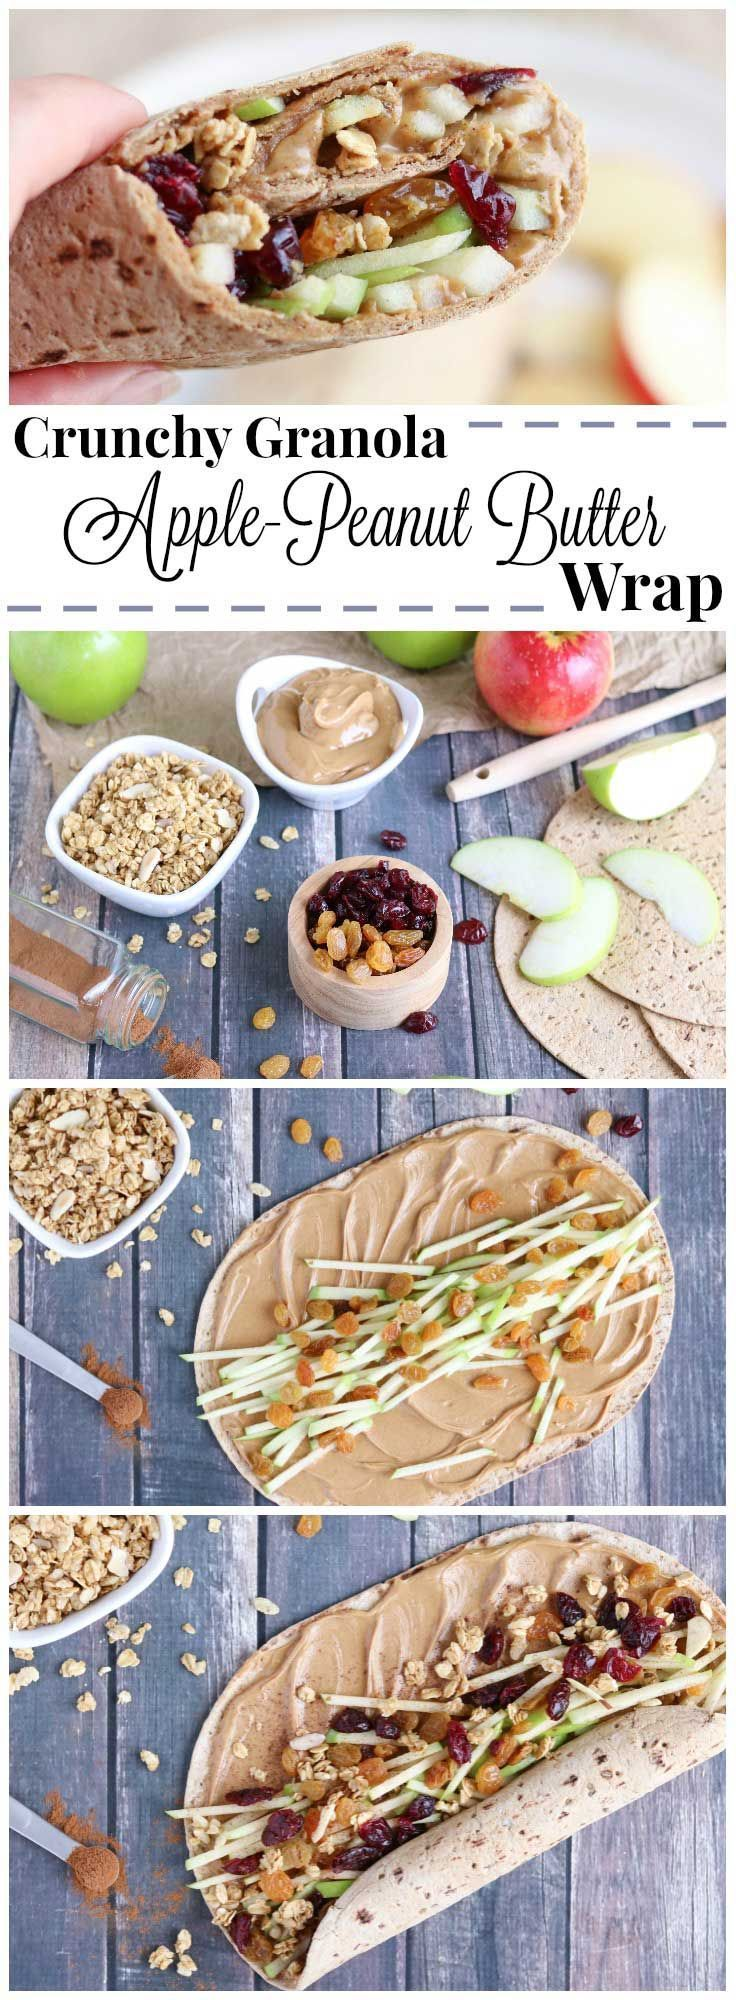 Full of protein, whole grains and fruits, this wrap recipe is fast, easy and so wonderfully adaptable! Our crunchy Peanut Butter Sandwich Wraps are perfect for on-the-go meals and make-ahead lunches (you can even go nut-free for school lunches)! Change up your peanut butter and jelly routine with this new peanut butter recipe idea that's got a delicious combination of sweet, crunchy, chewy and creamy ingredients your whole family will love!